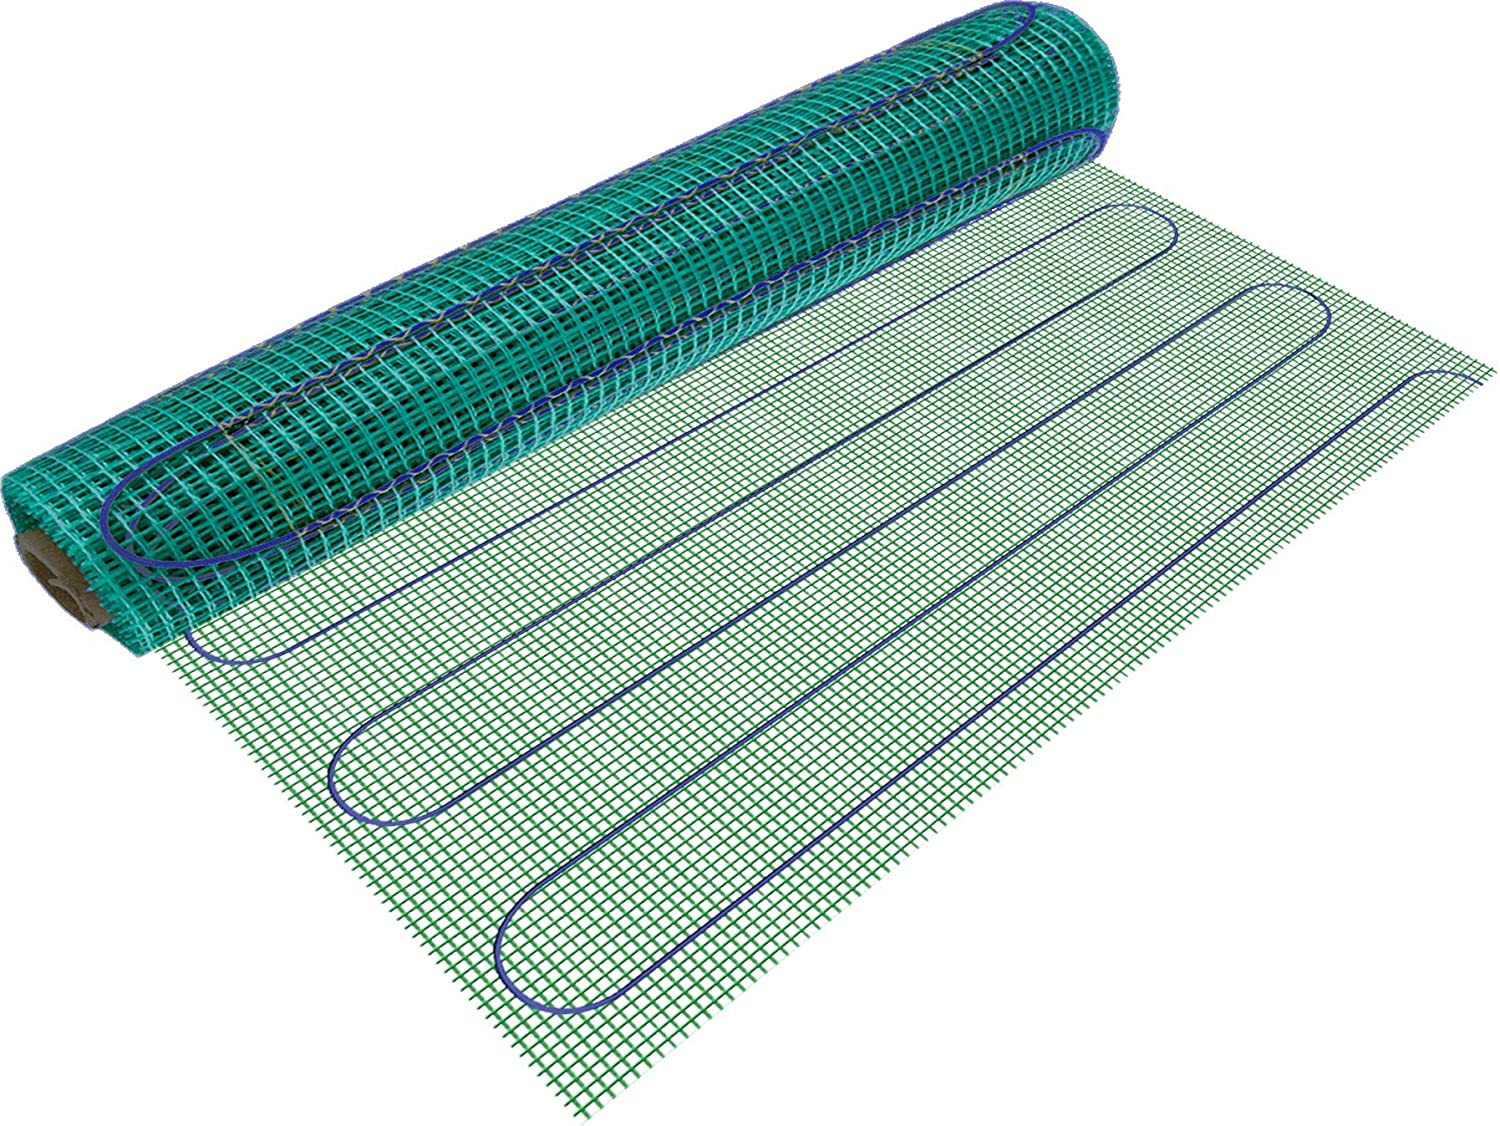 WarmlyYours TempZone Electric Floor Heating Mat, 15 sq. ft. (3' x 5')